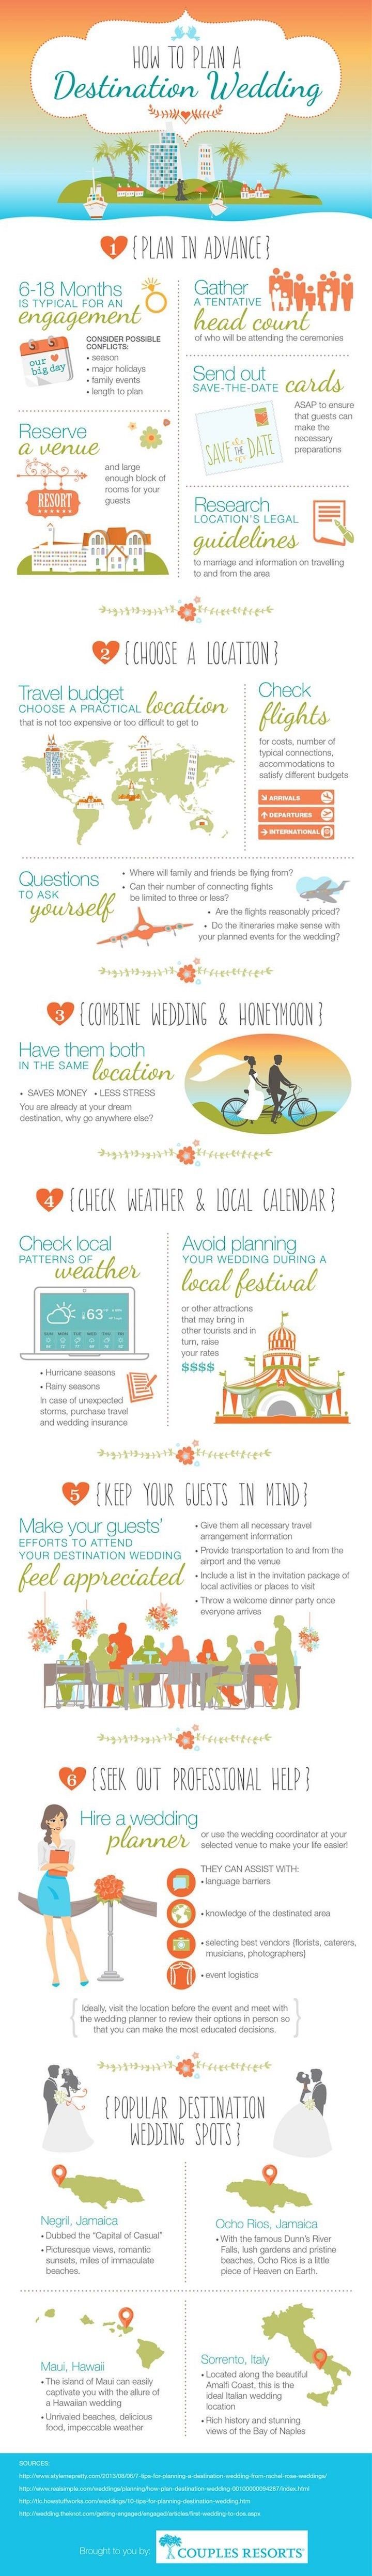 Great guide on how to plan a destination wedding. Skip number 2, your location is Florida!